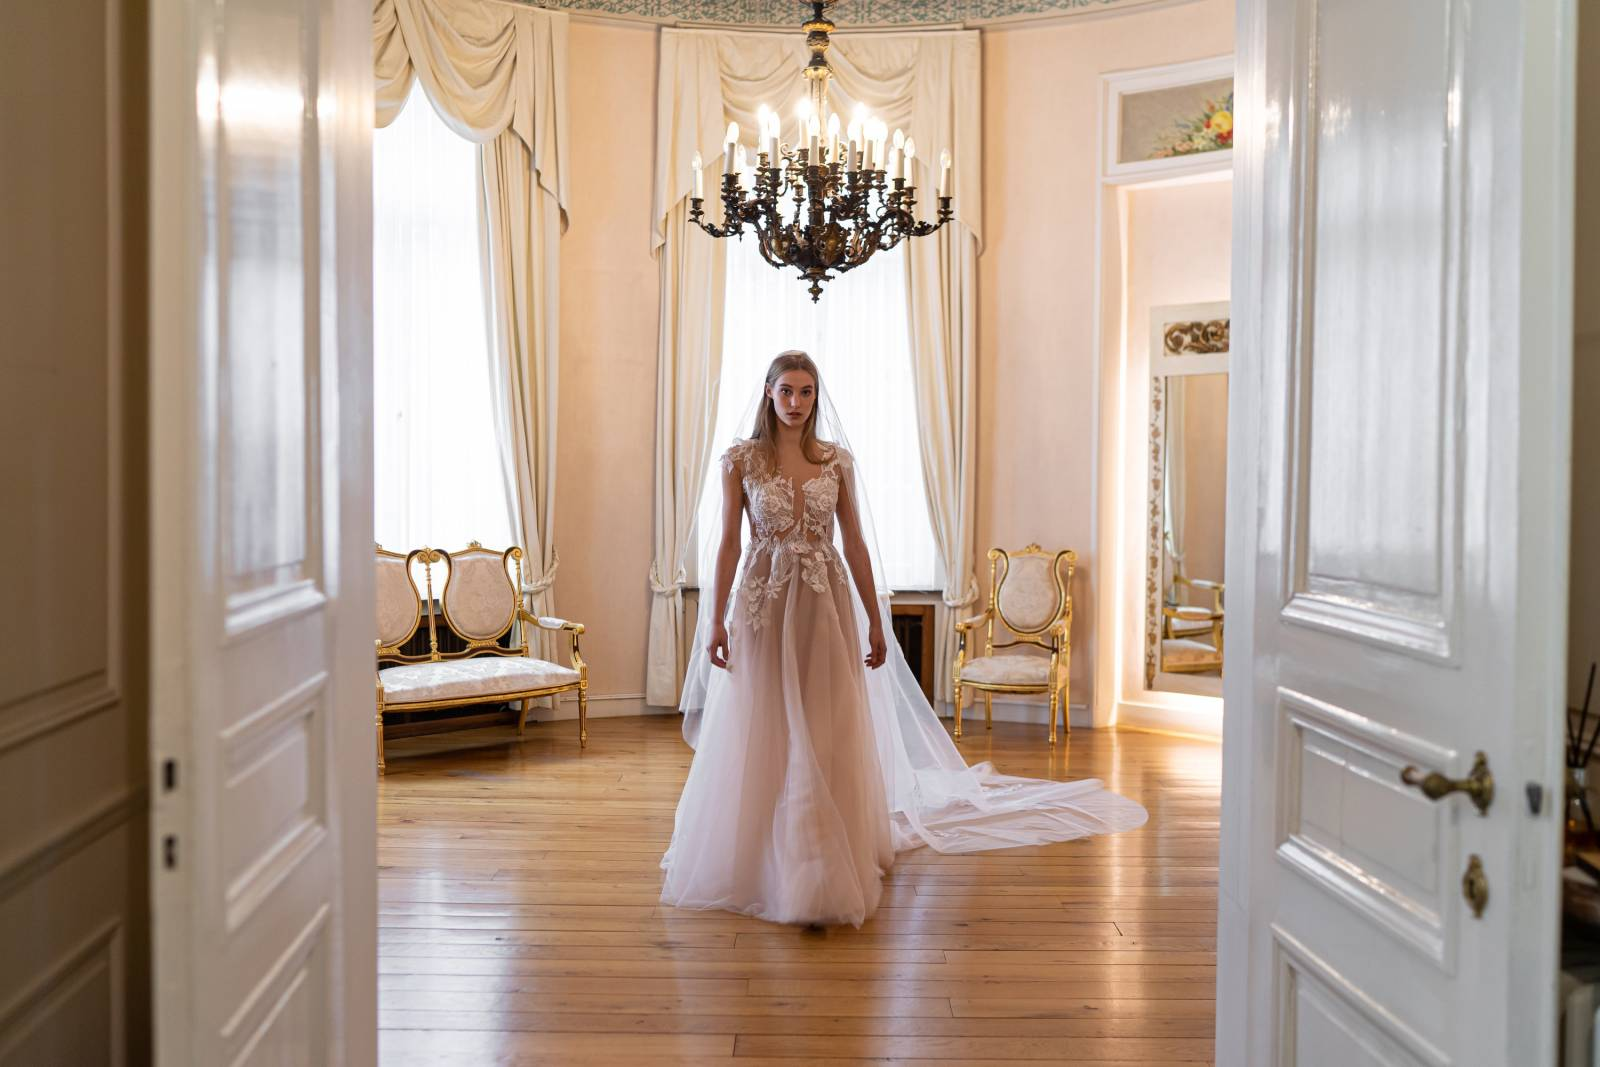 Veerle Praet Couture - Trouwjurken - Bruidsjurken - Trouwkleed - Suitekledij - House of Weddings - 5